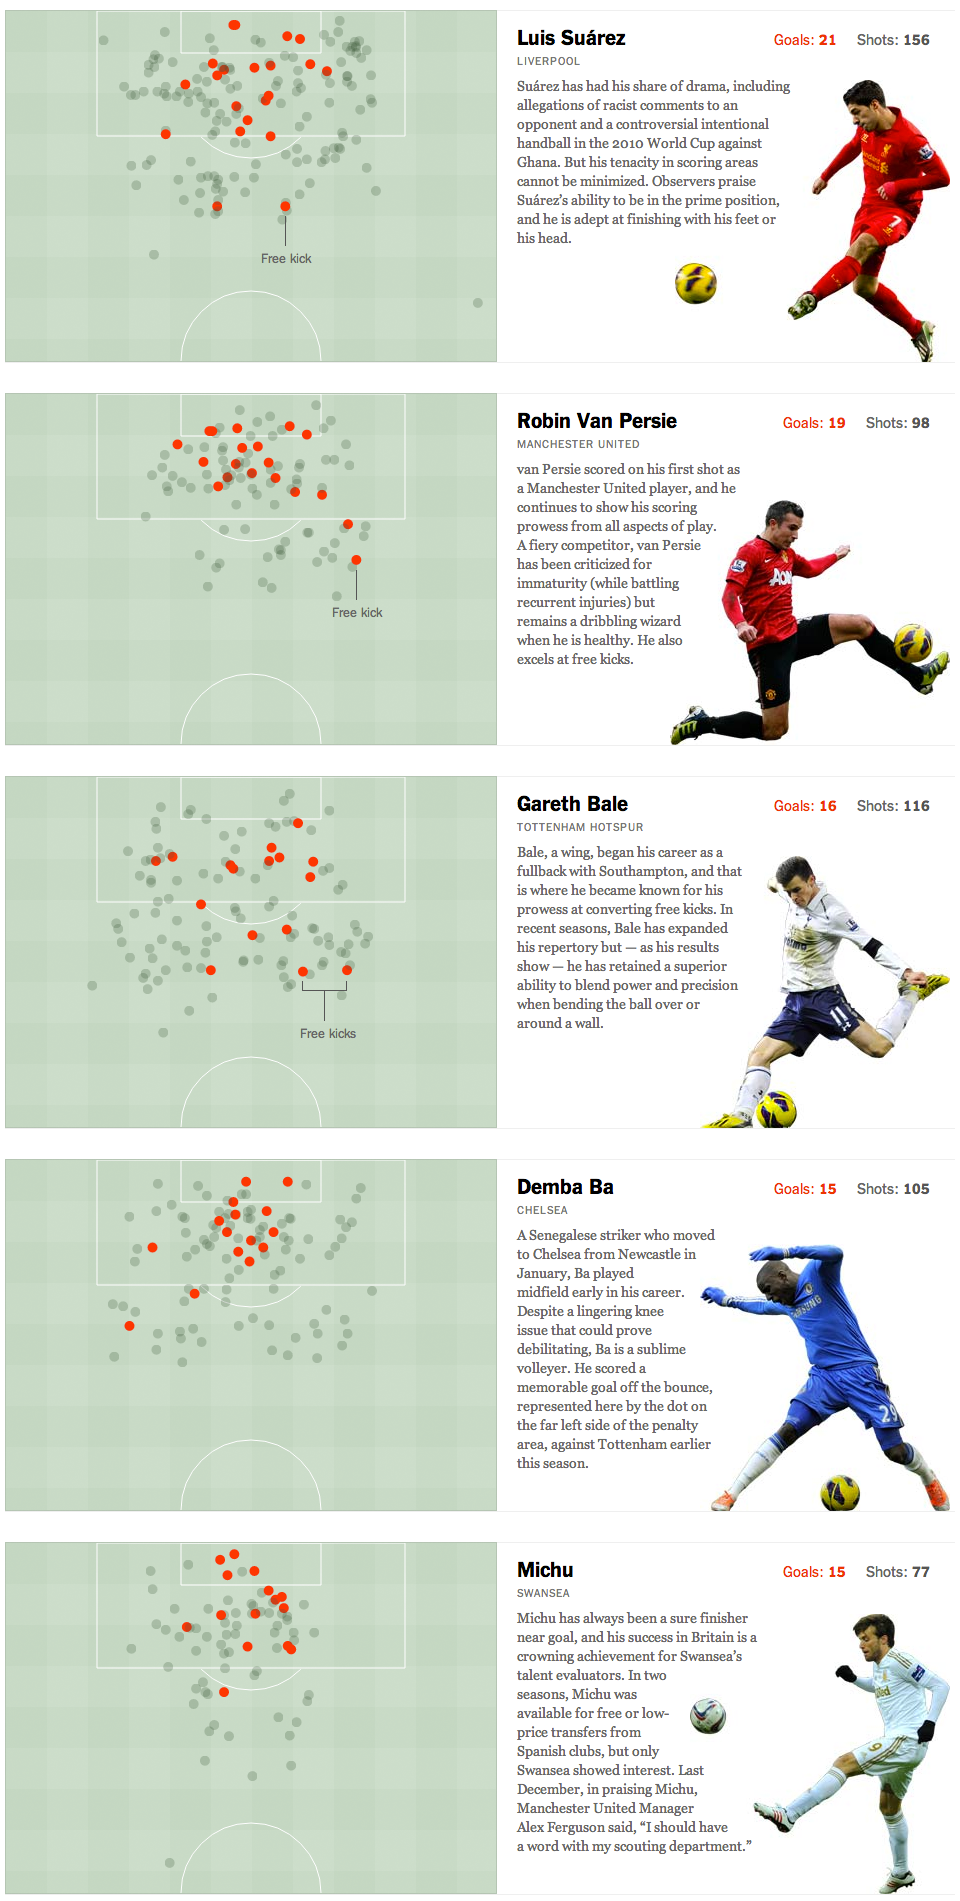 Shots And Goals From The Premier League S Top Scorers This Season Tottenham Football Football Tactics Football Icon